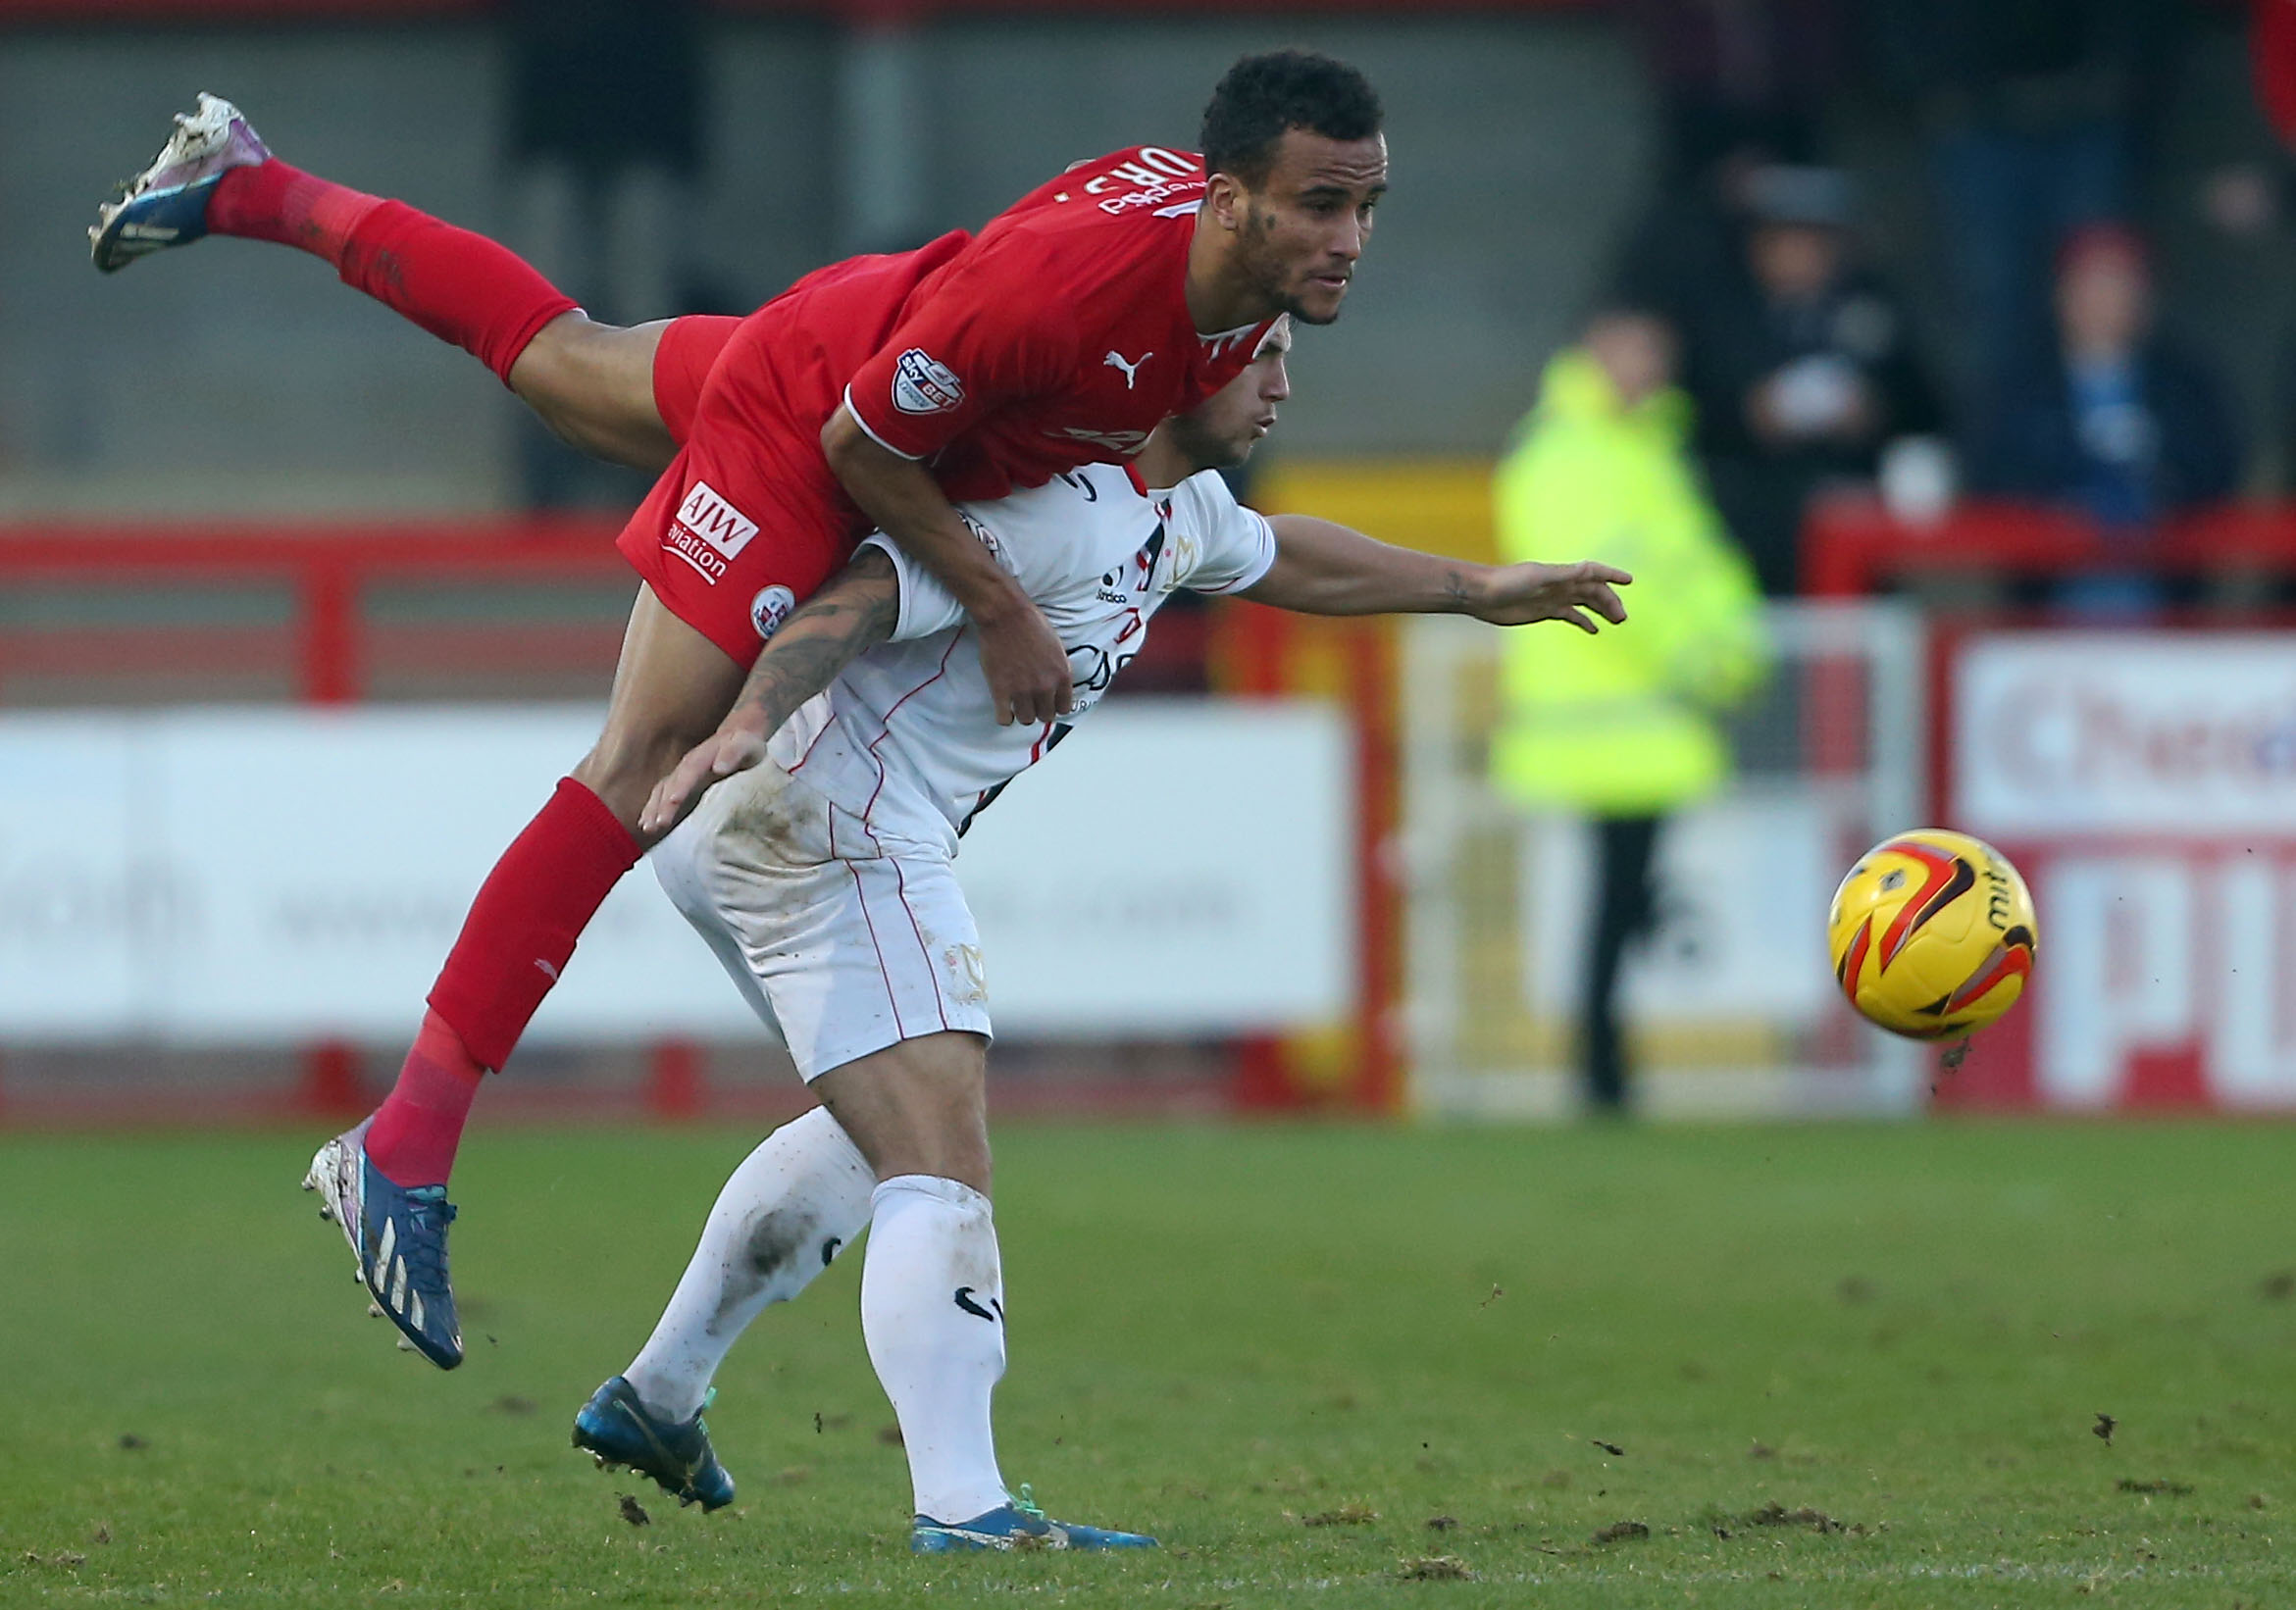 James Hurst has had his contract terminated by Crawley